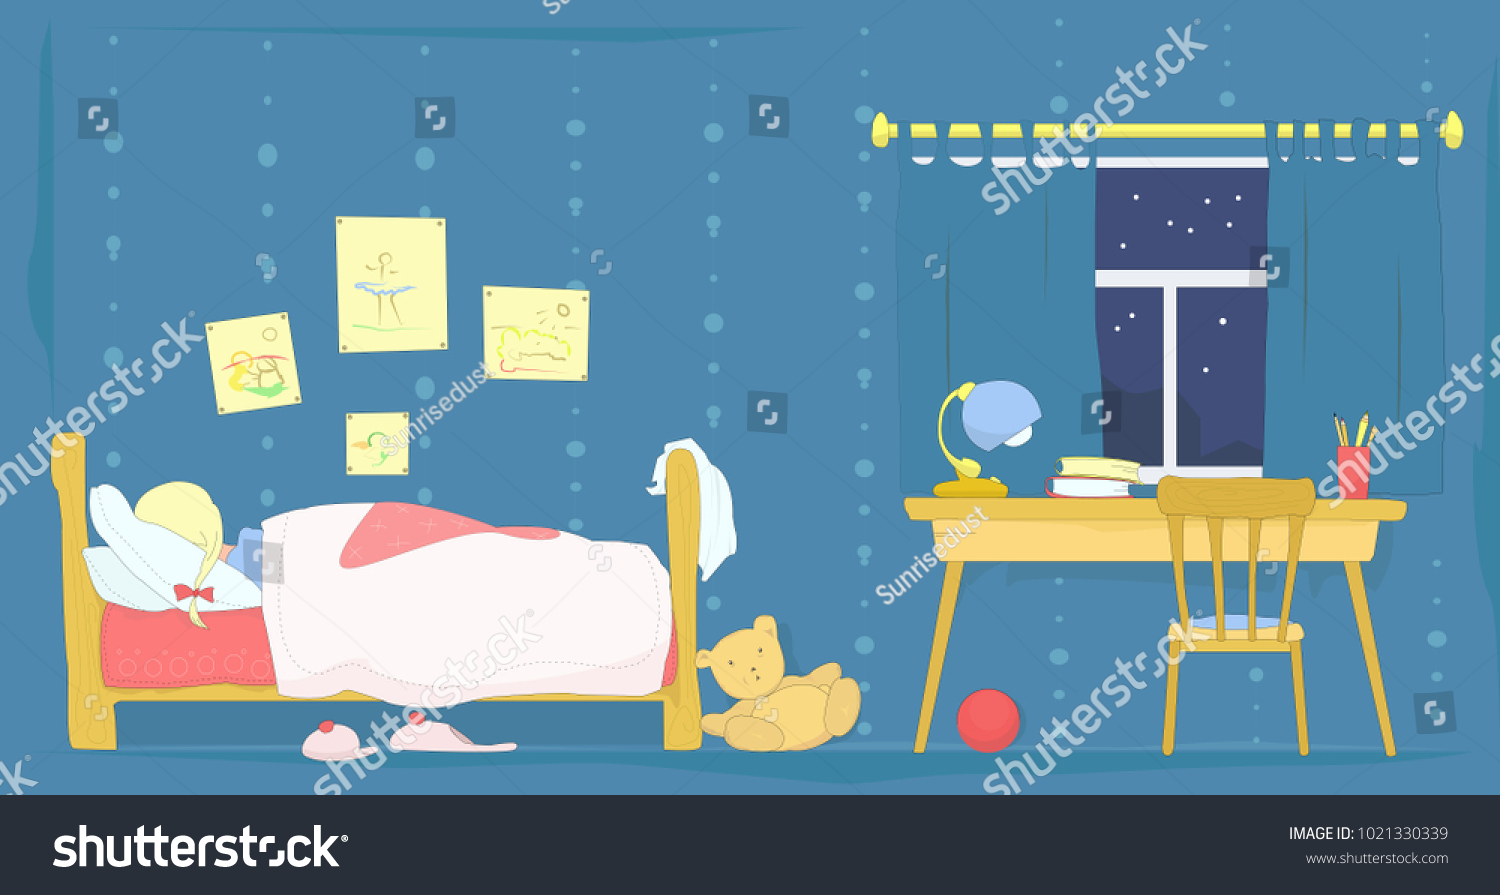 Hand Drawn Vector Illustration Of A Kids Bedroom At Night With Sleeping Little Girl Cartoon